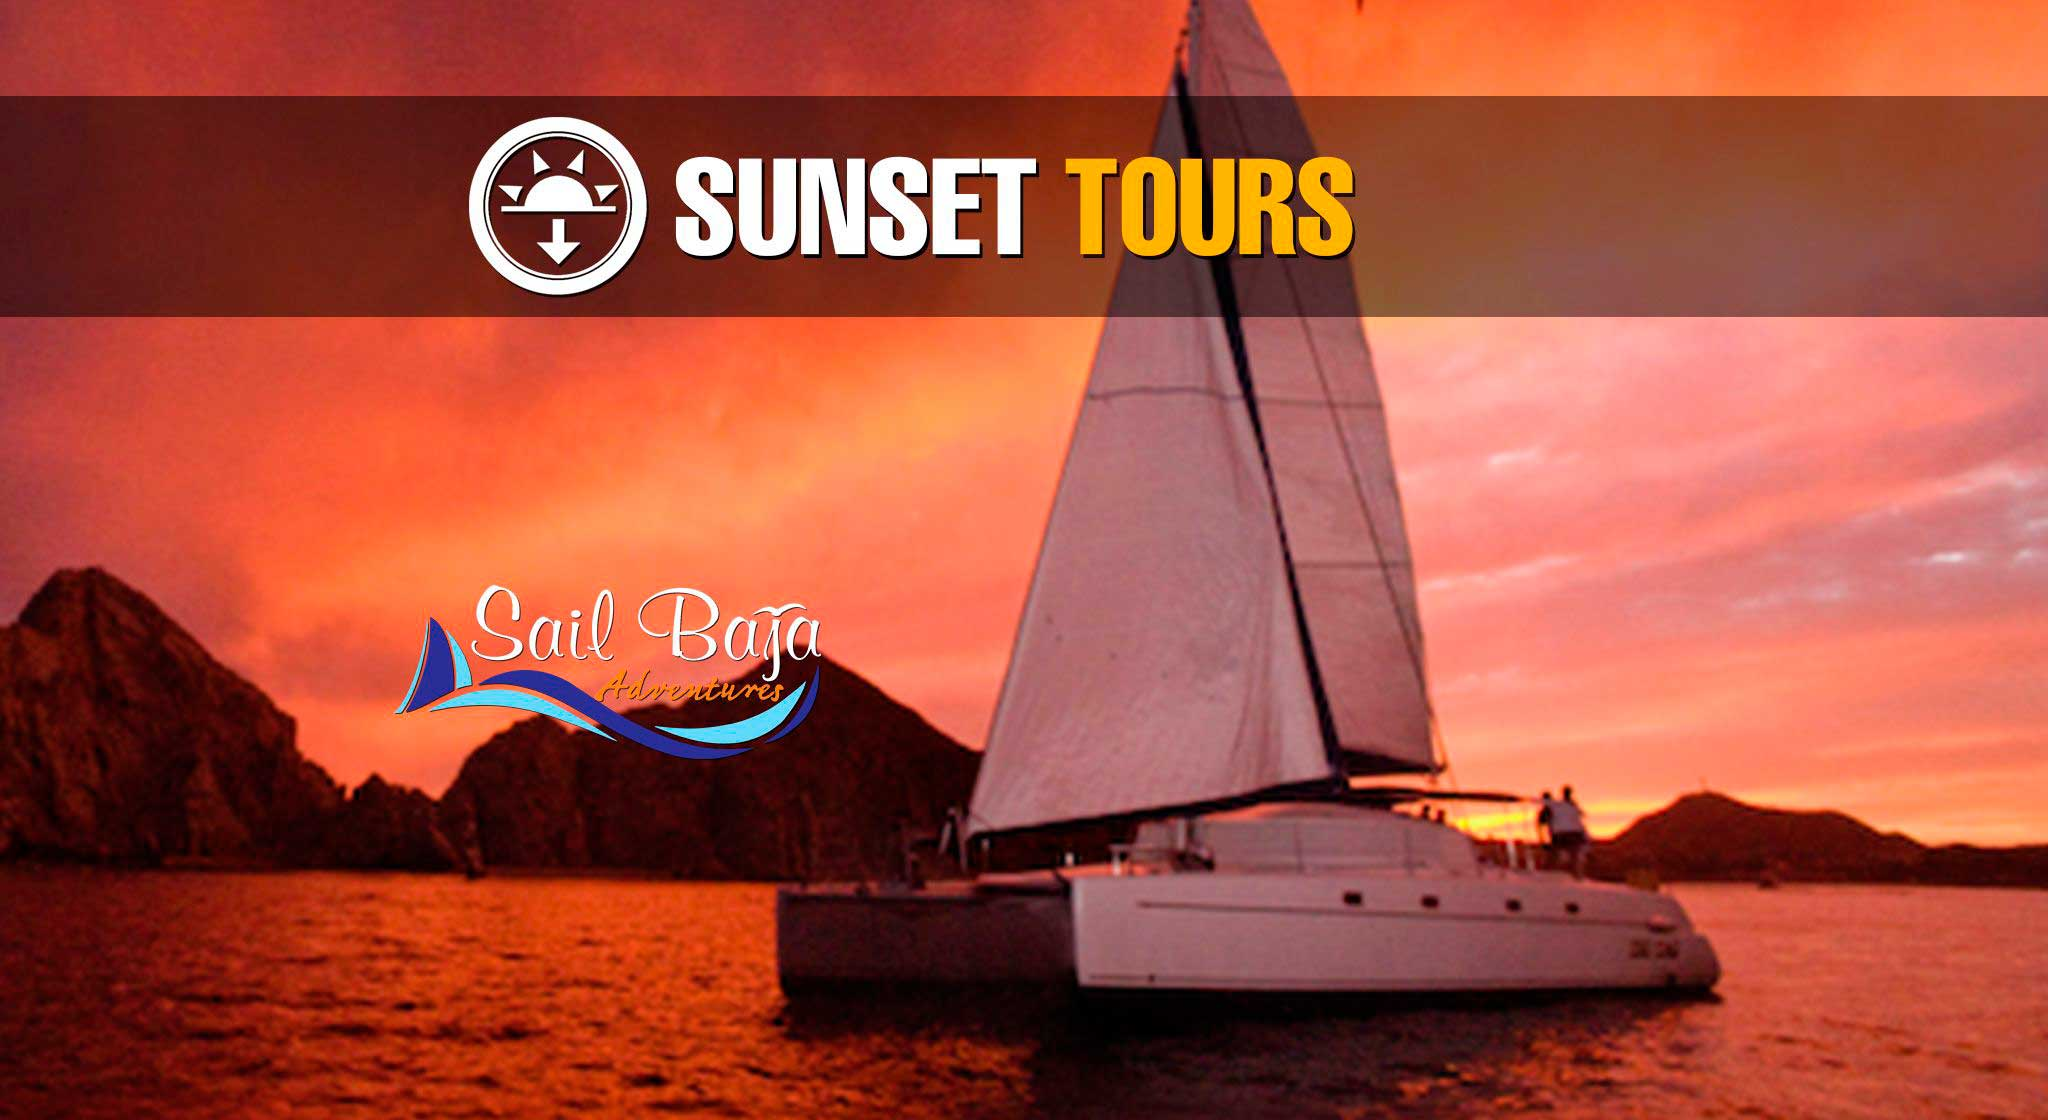 Sunset Tours in Cabo San Lucas, Los Cabos, Mexico